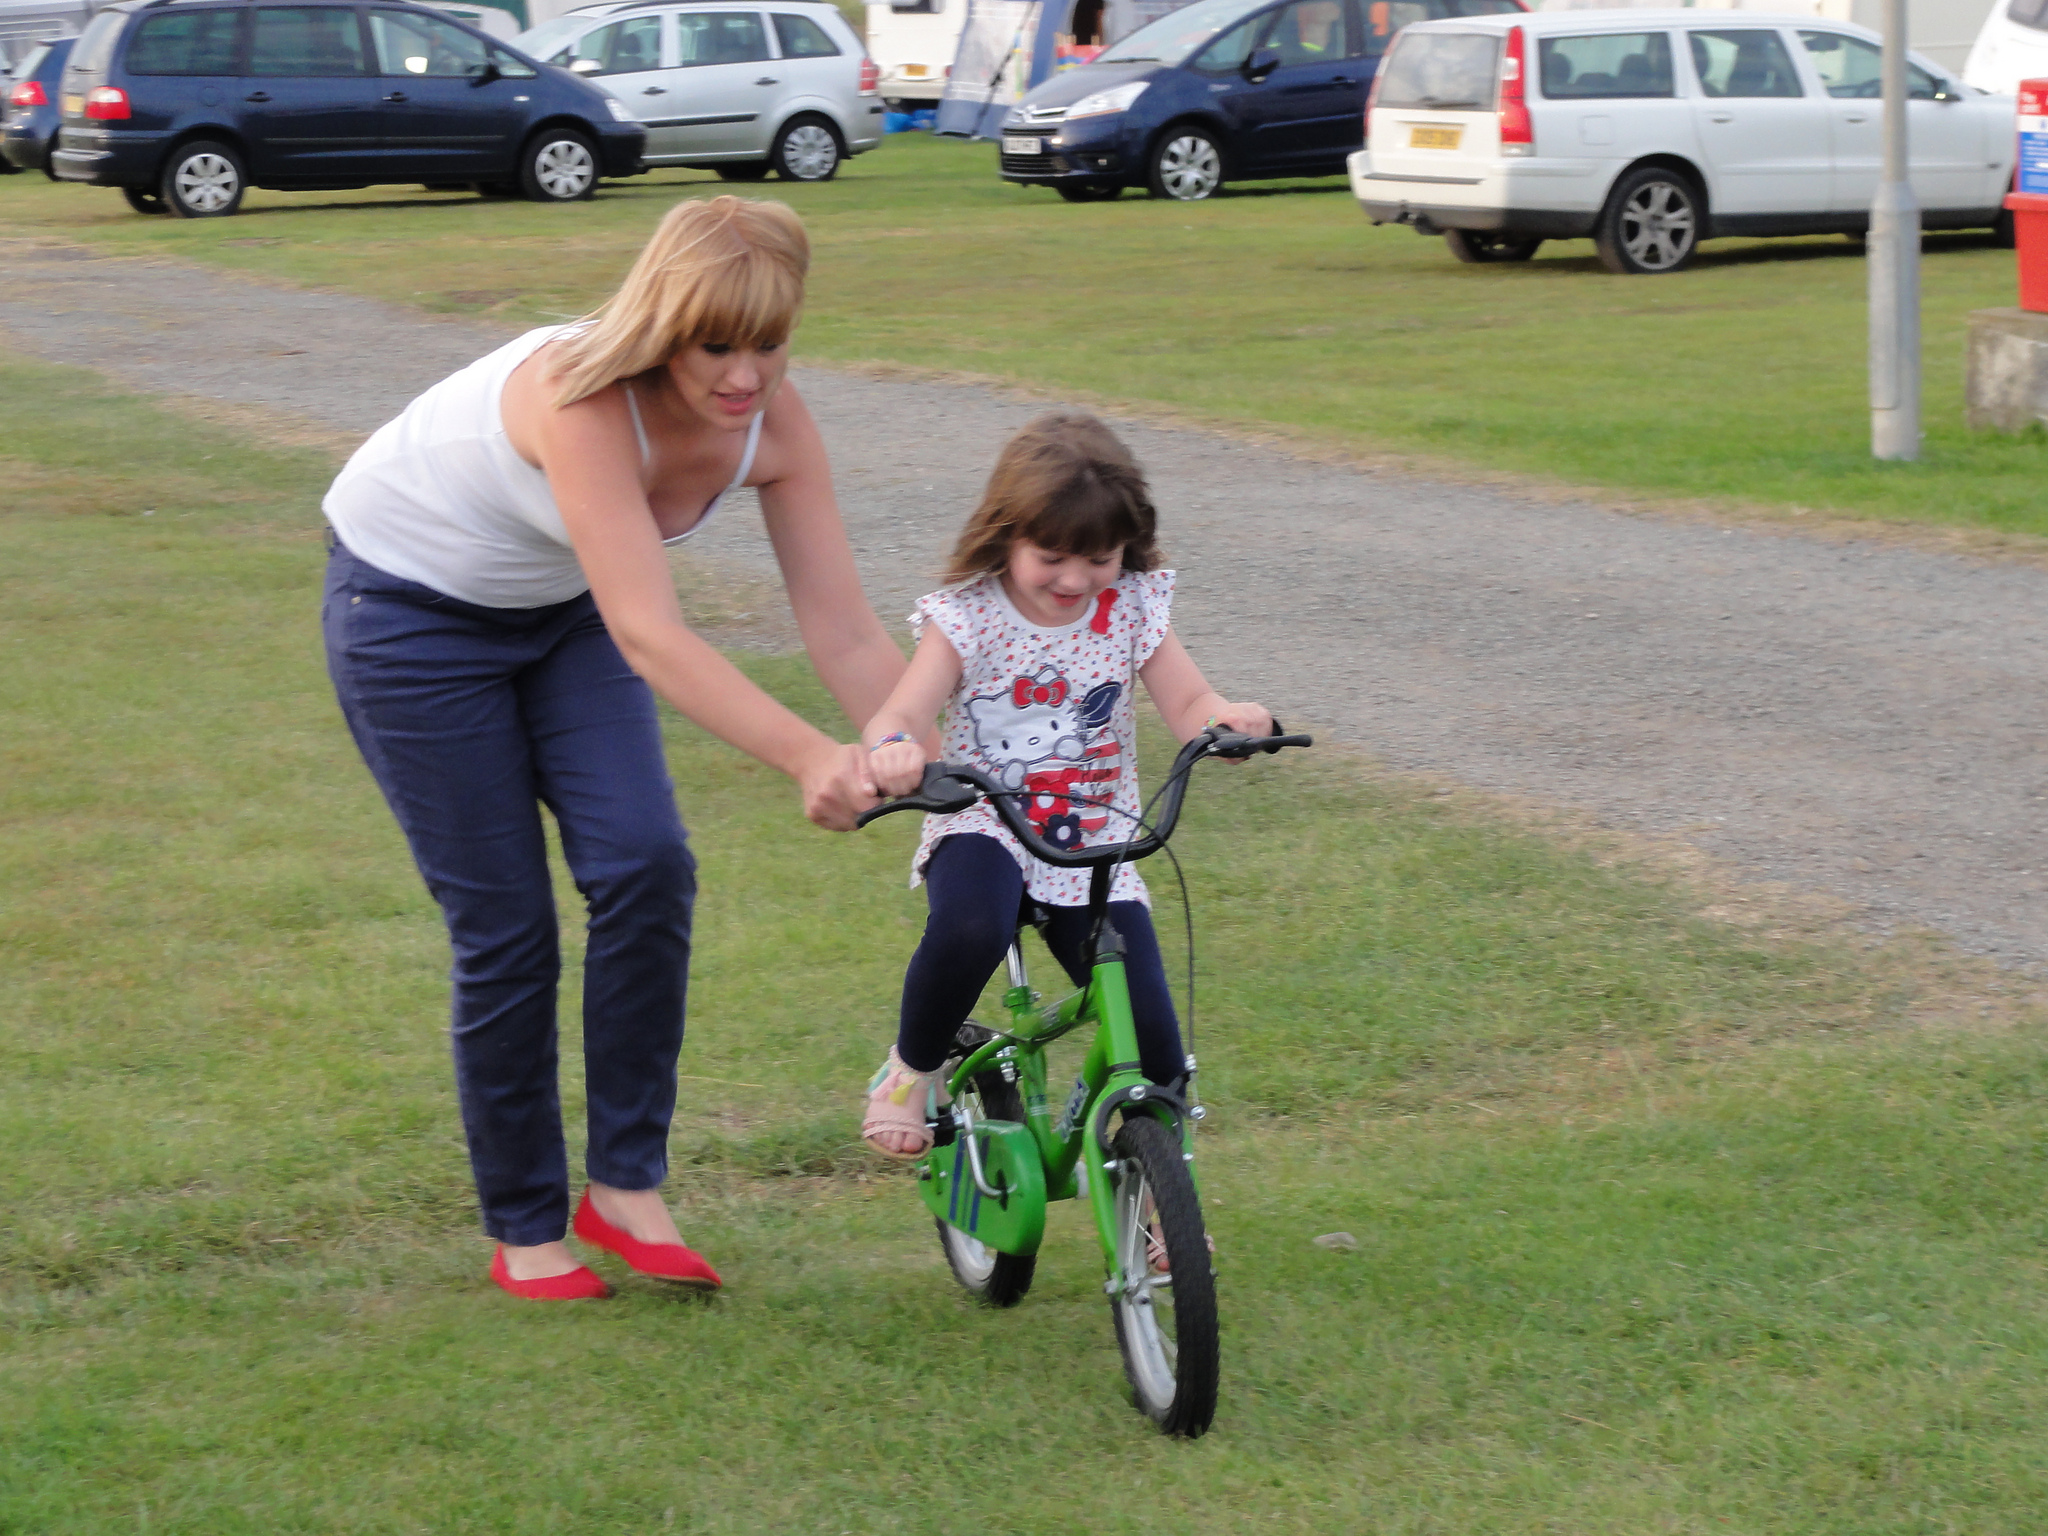 Learning how to ride a bicycle